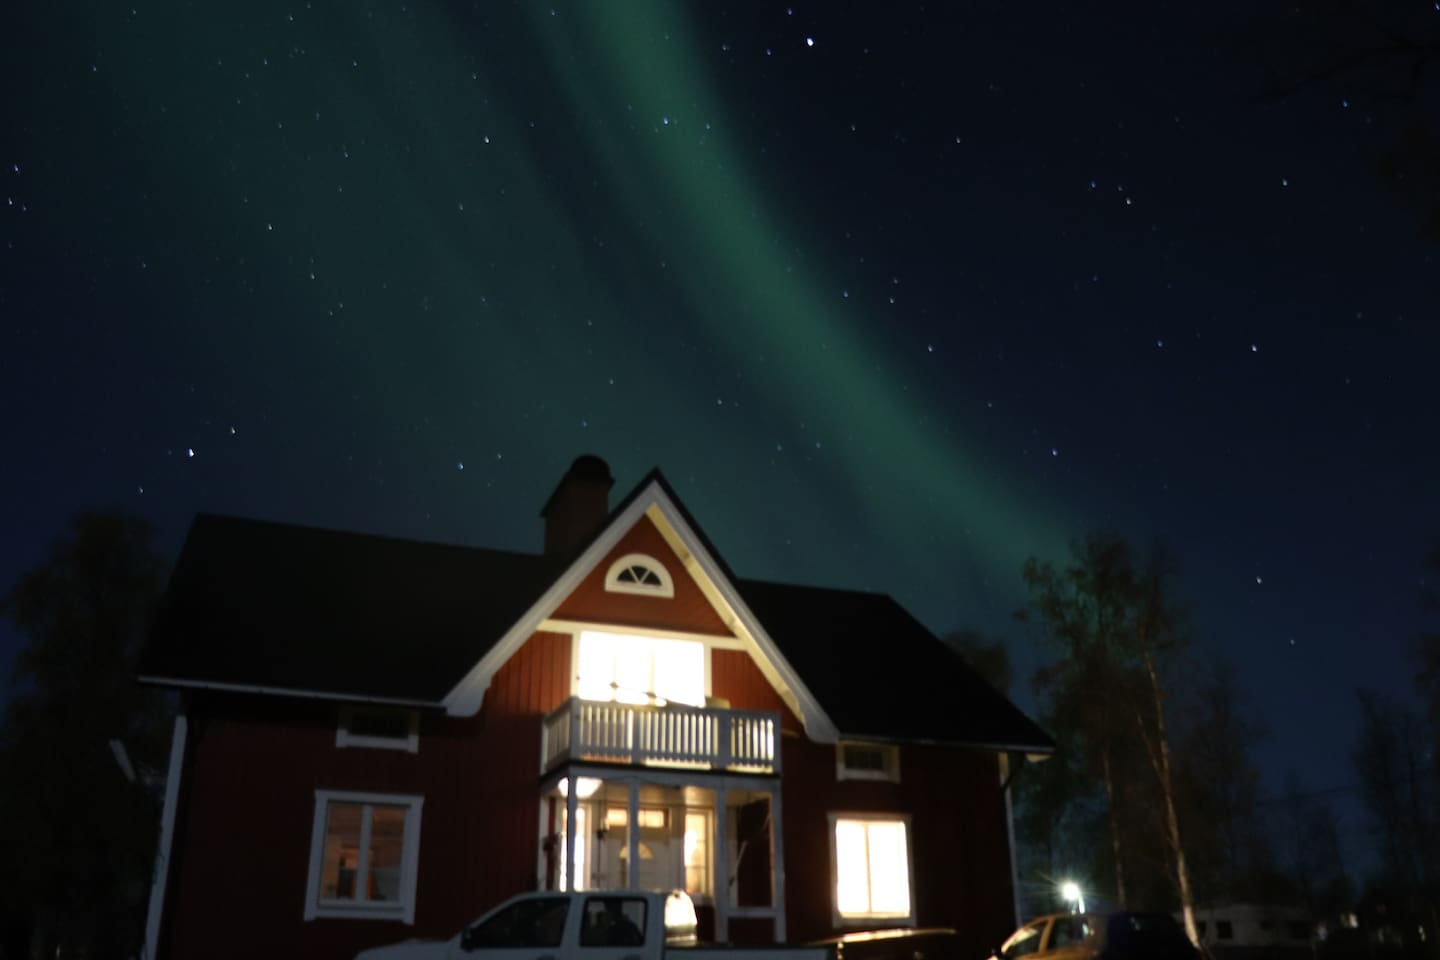 Northern lights above the main house